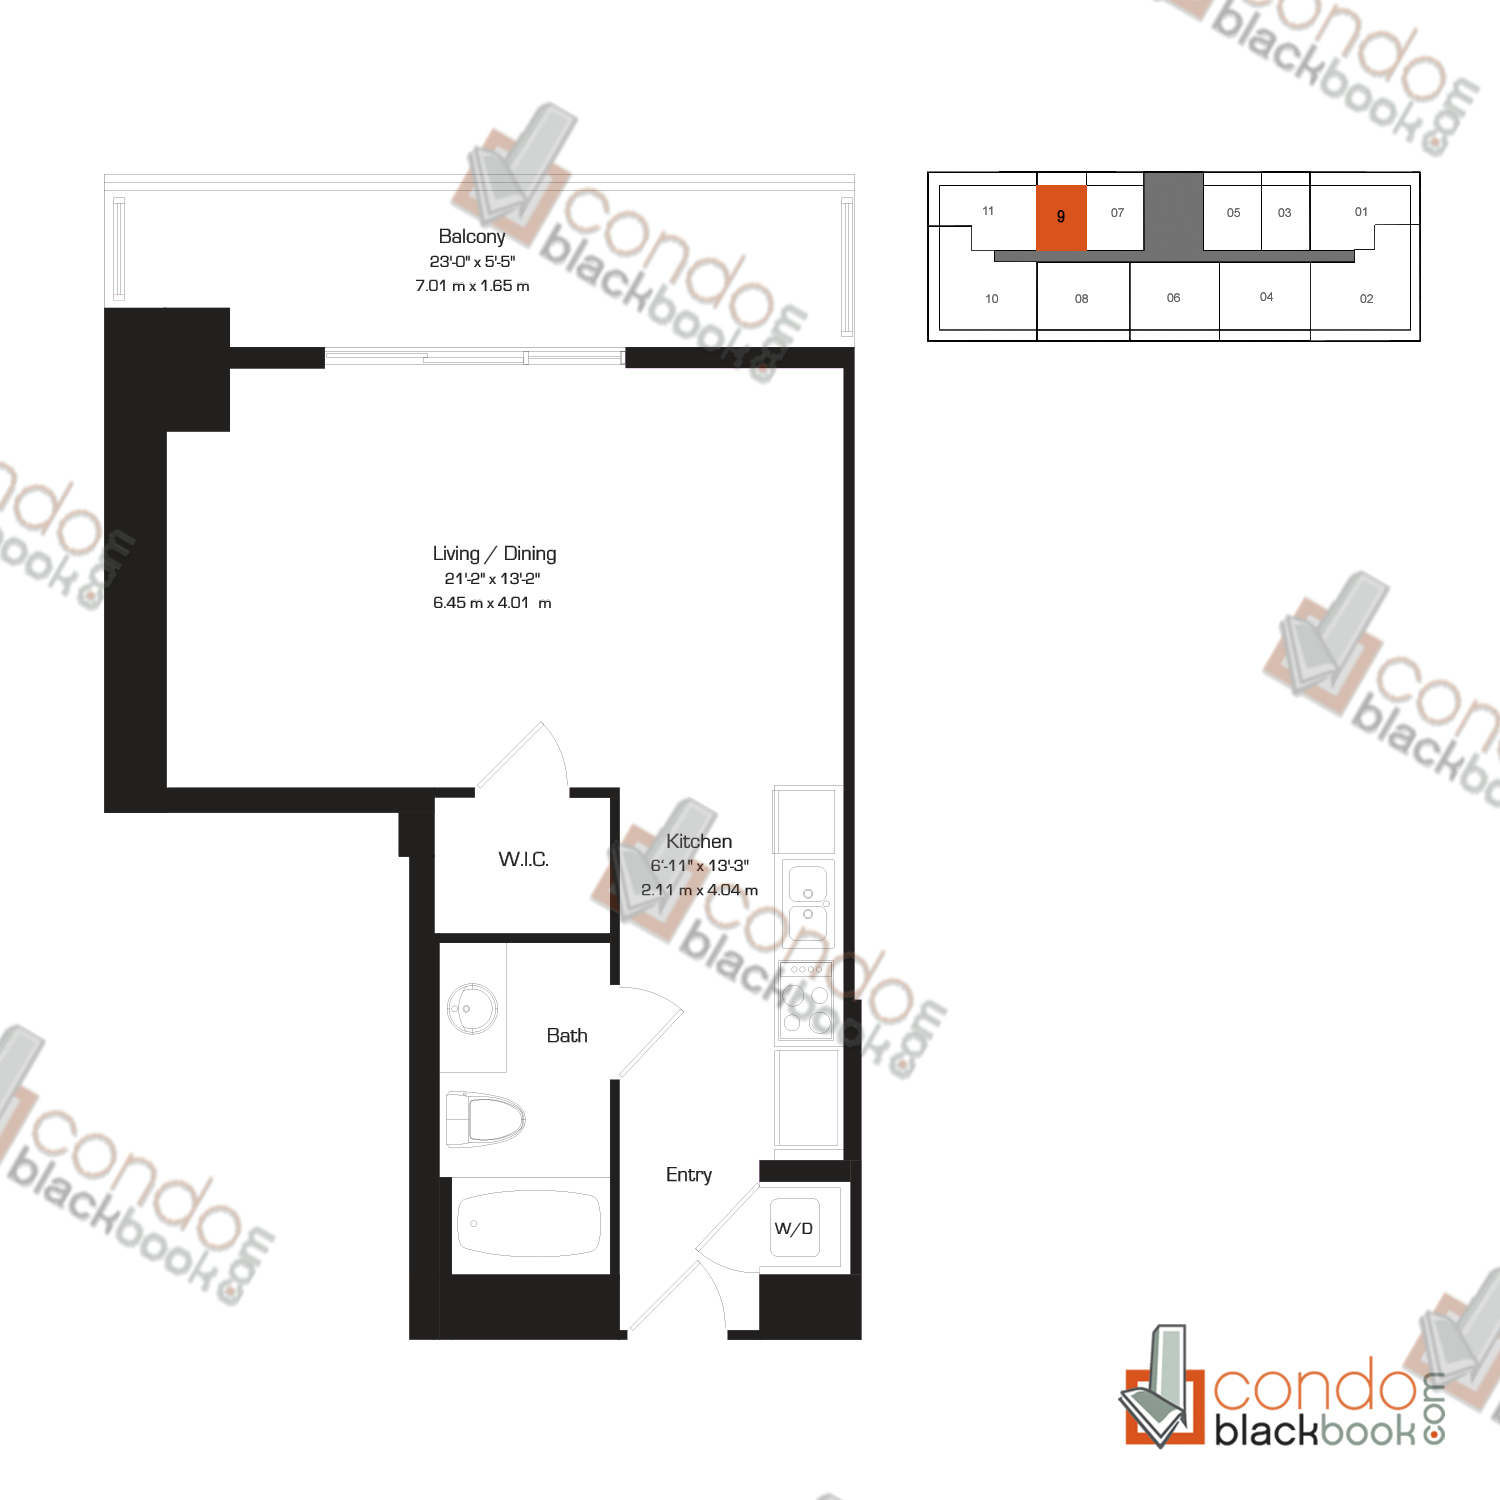 Floor plan for 50 Biscayne Downtown Miami Miami, model C, line 09, 0/1 bedrooms, 567 sq ft